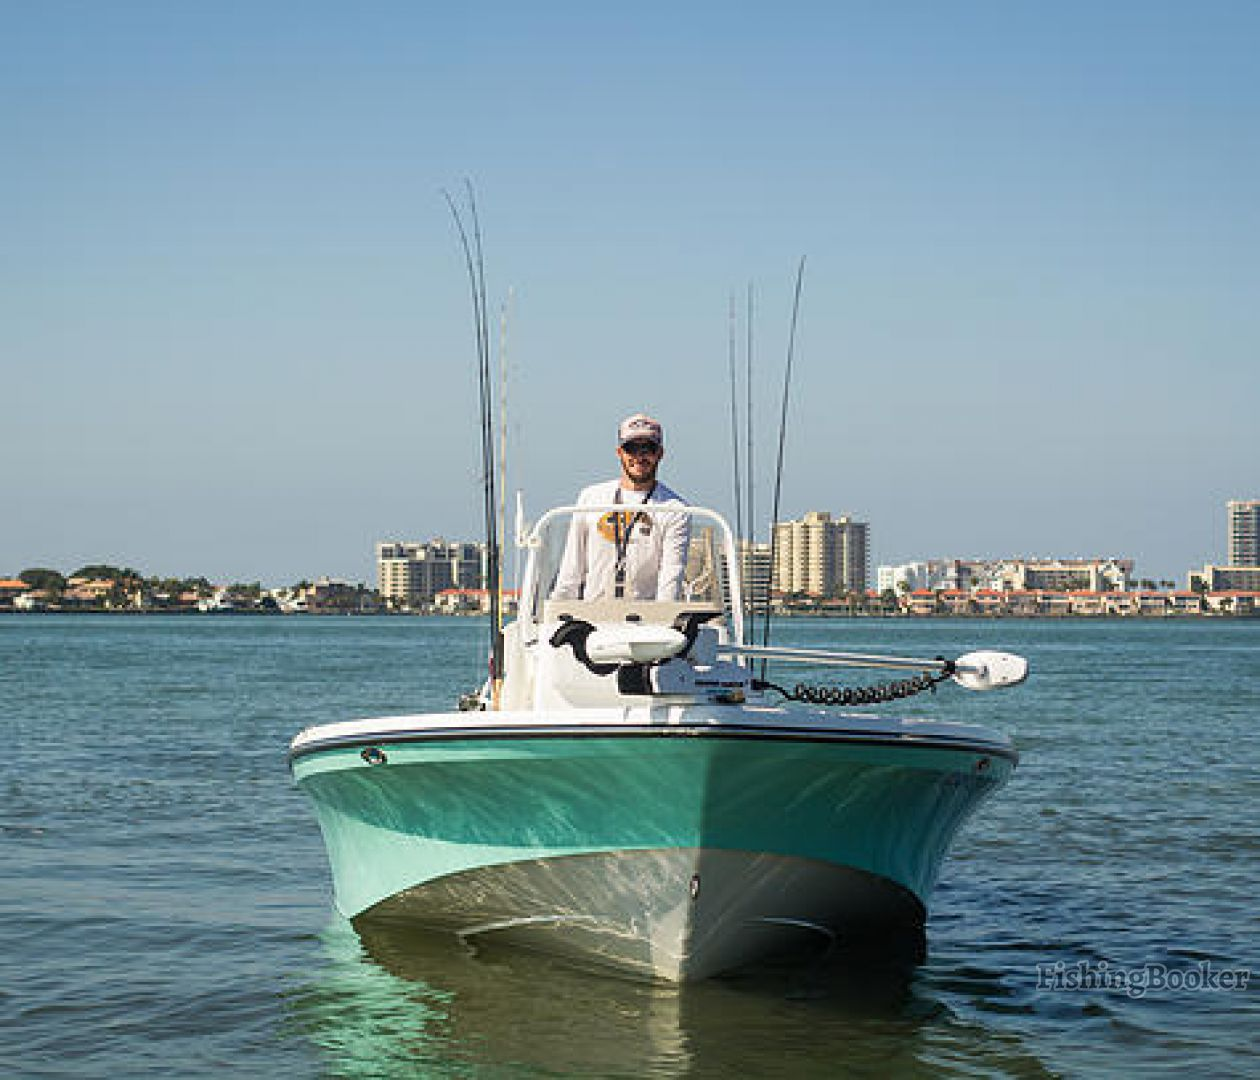 Prime tide fishing charters clearwater florida for Clearwater beach fishing charters